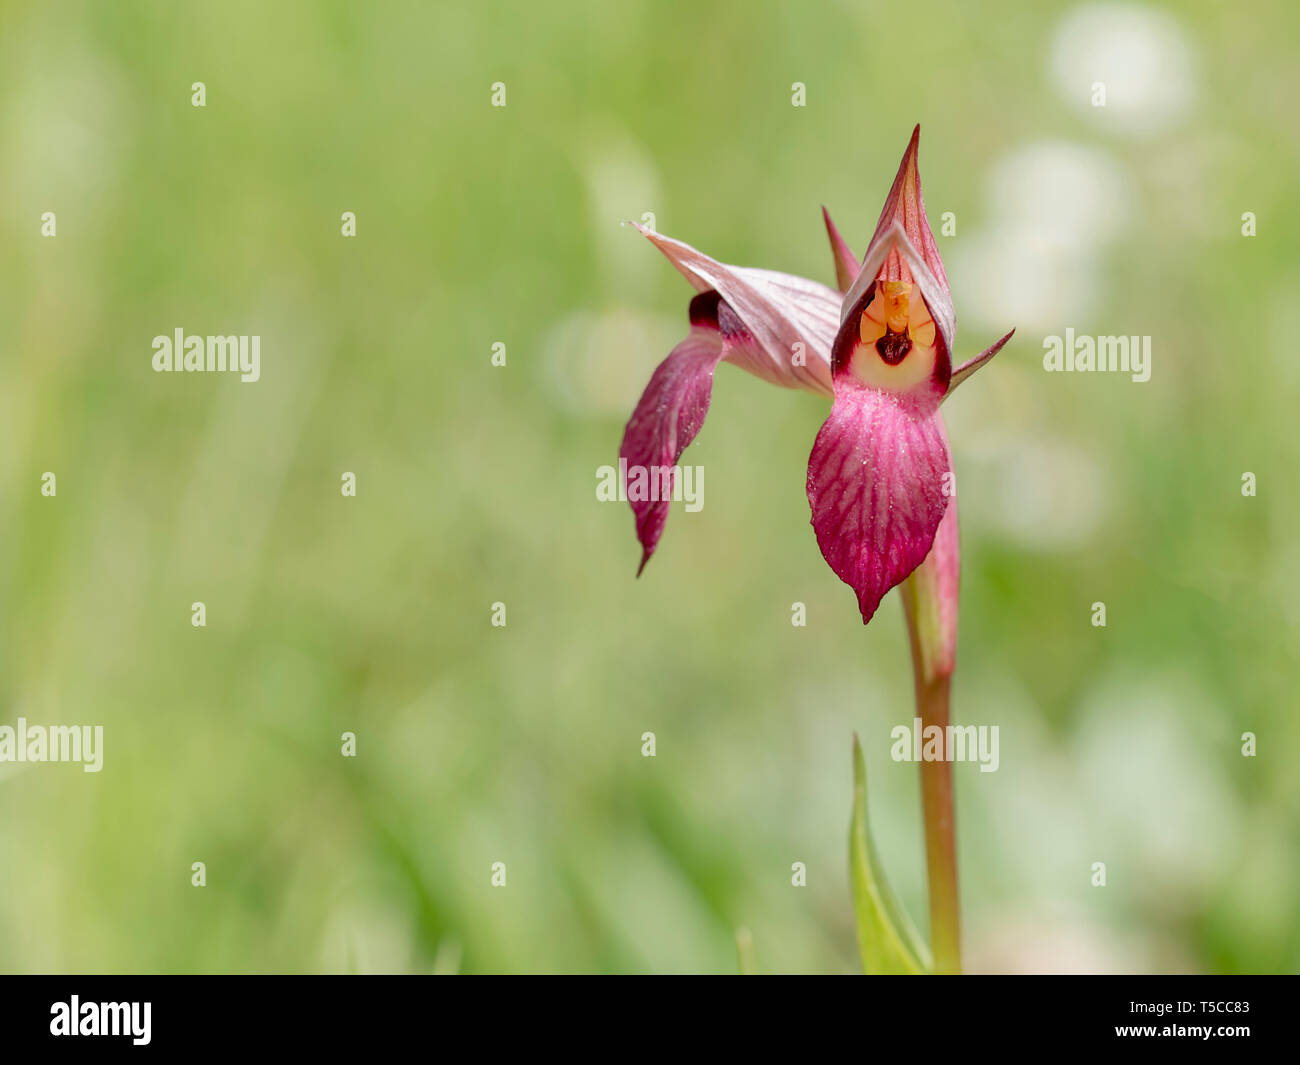 Serapias Lingua, Tongue orchid. Wildflower. Beautiful detailed view inside flower. - Stock Image